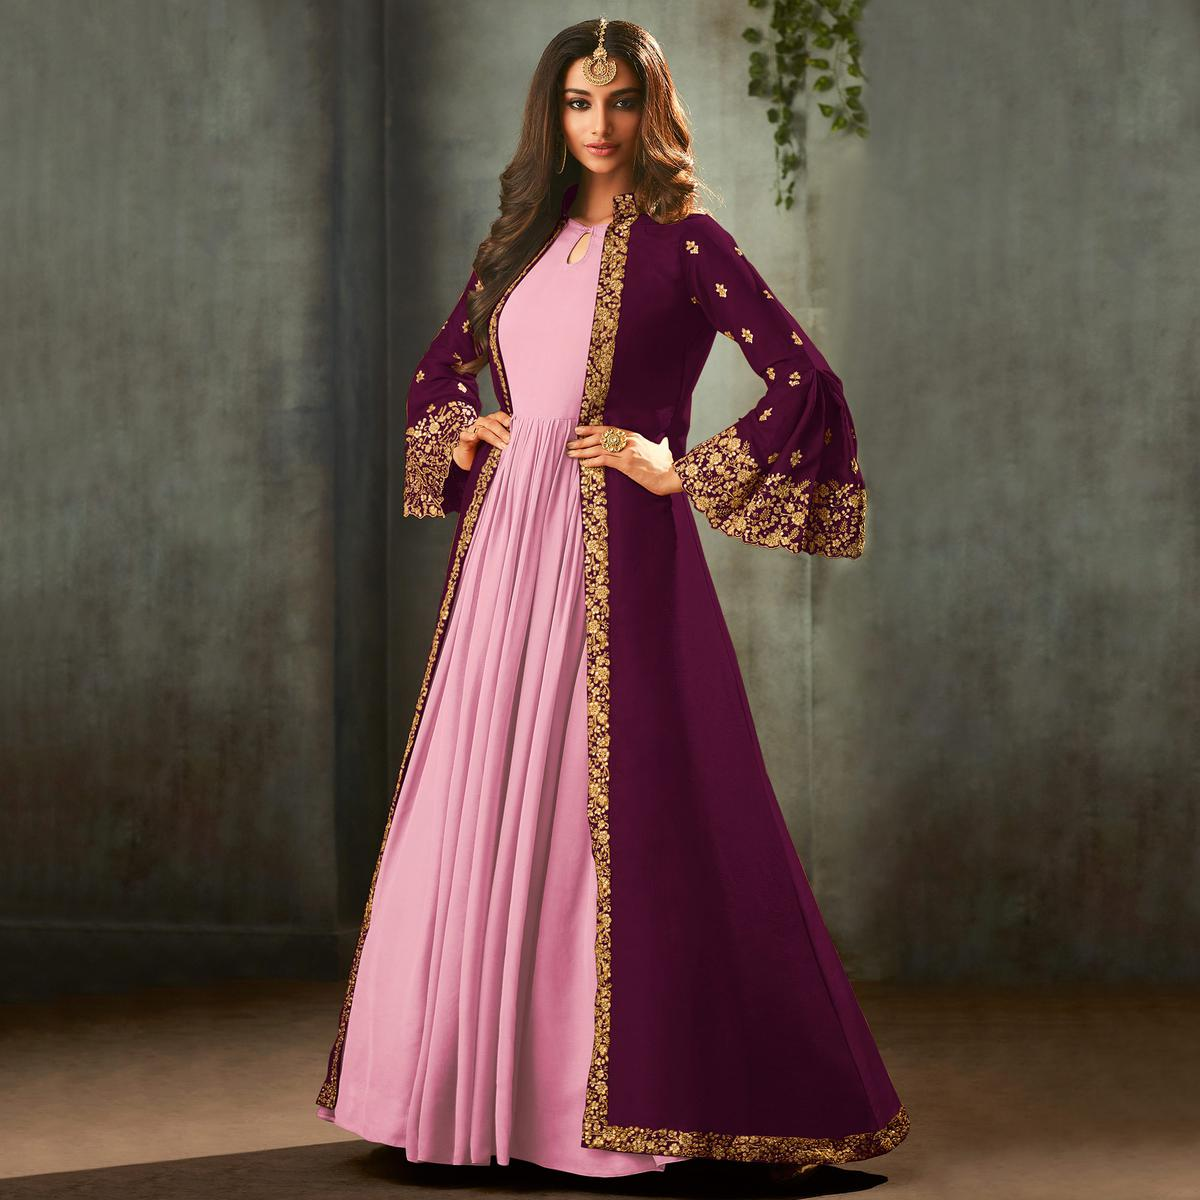 Eye-catching Purple-Pink Colored Partywear Embroidered Gown With Long Jacket